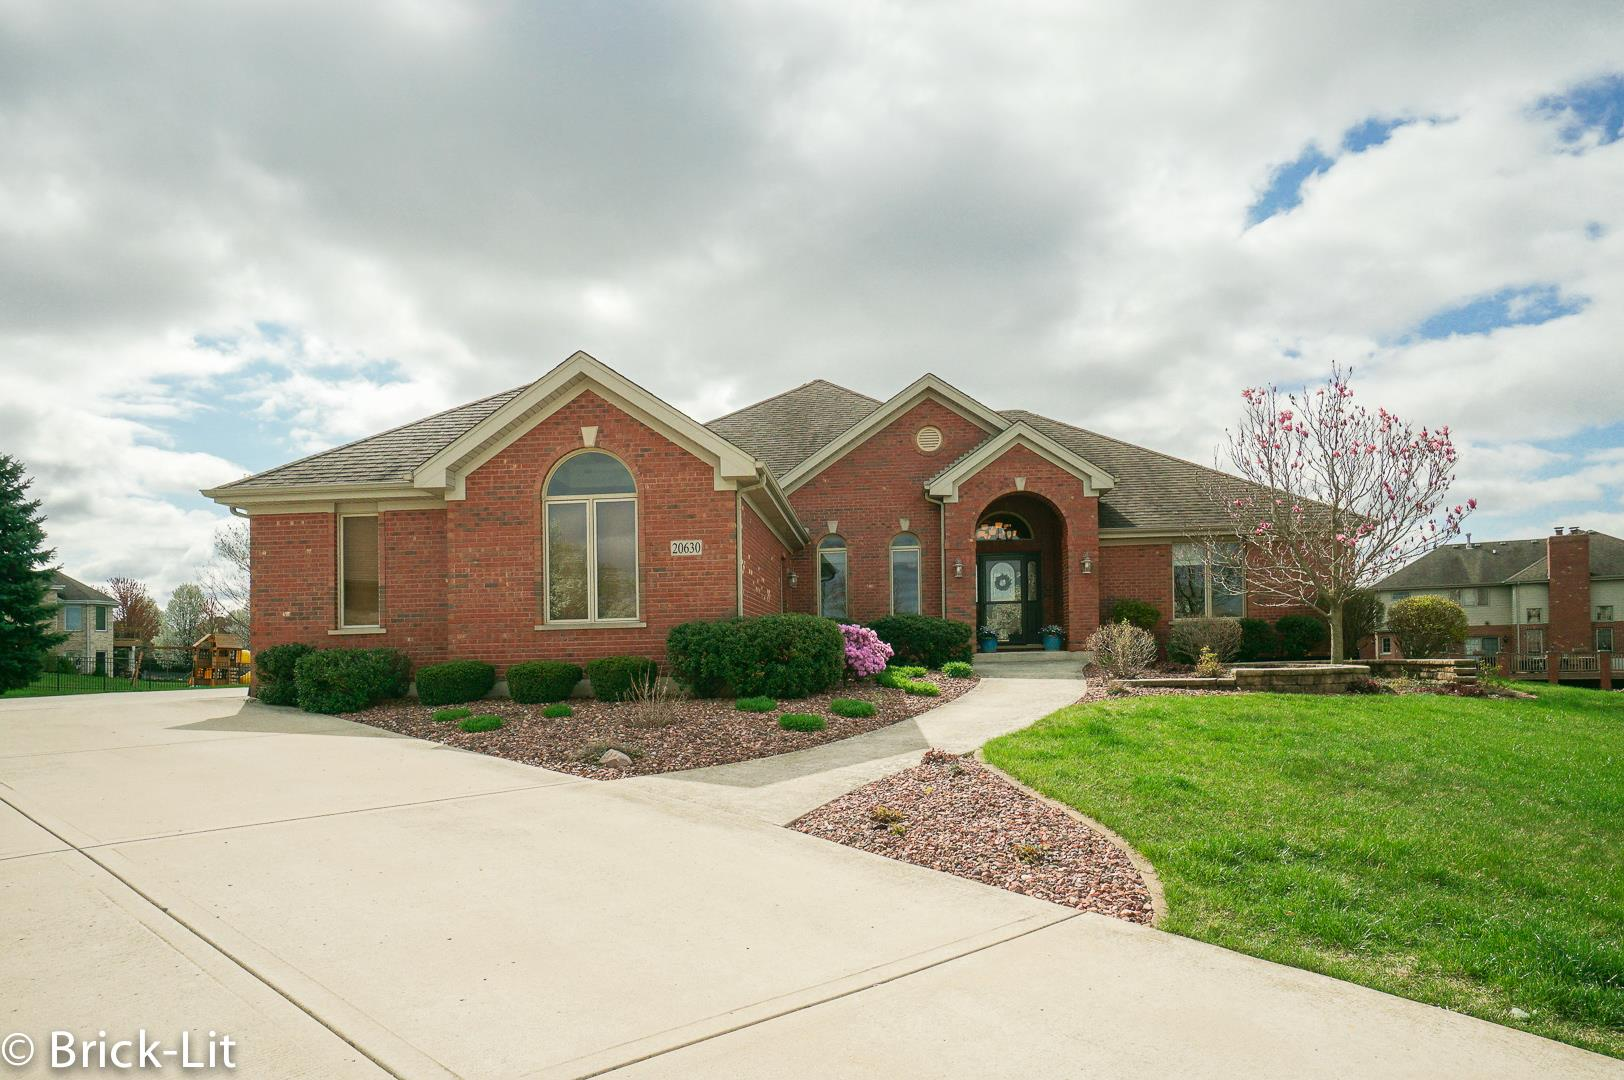 20630 Orchard Court, Frankfort, IL 60423 - #: 11058273